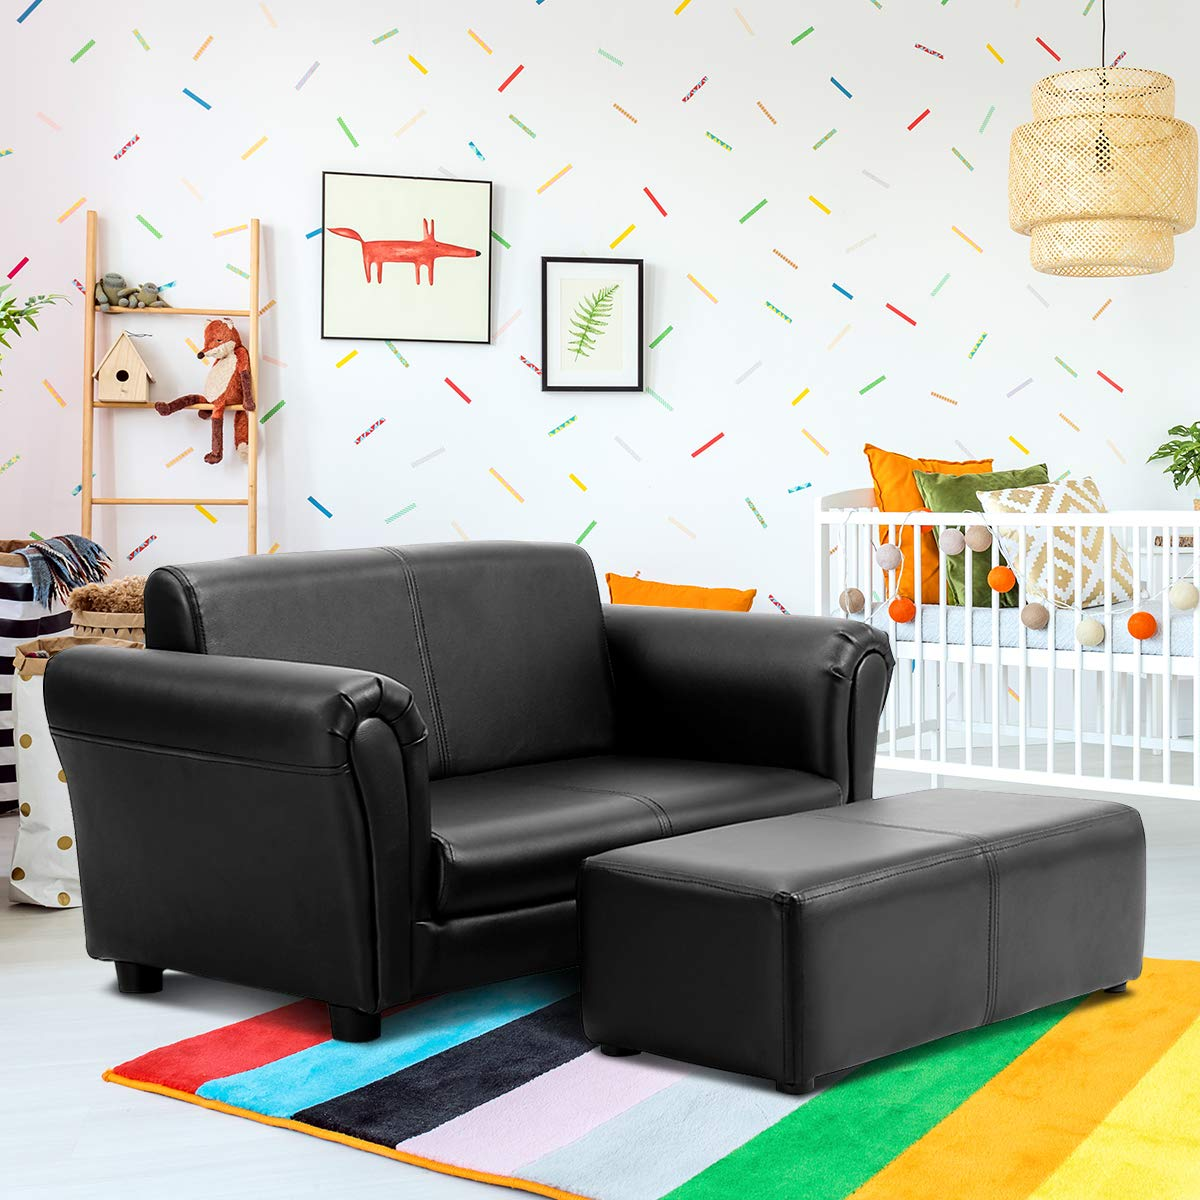 Costzon Kids Sofa Set 2 Seater Armrest Children Couch Lounge w/Footstool, ASTM and CPSIA Certified (Black) by Costzon